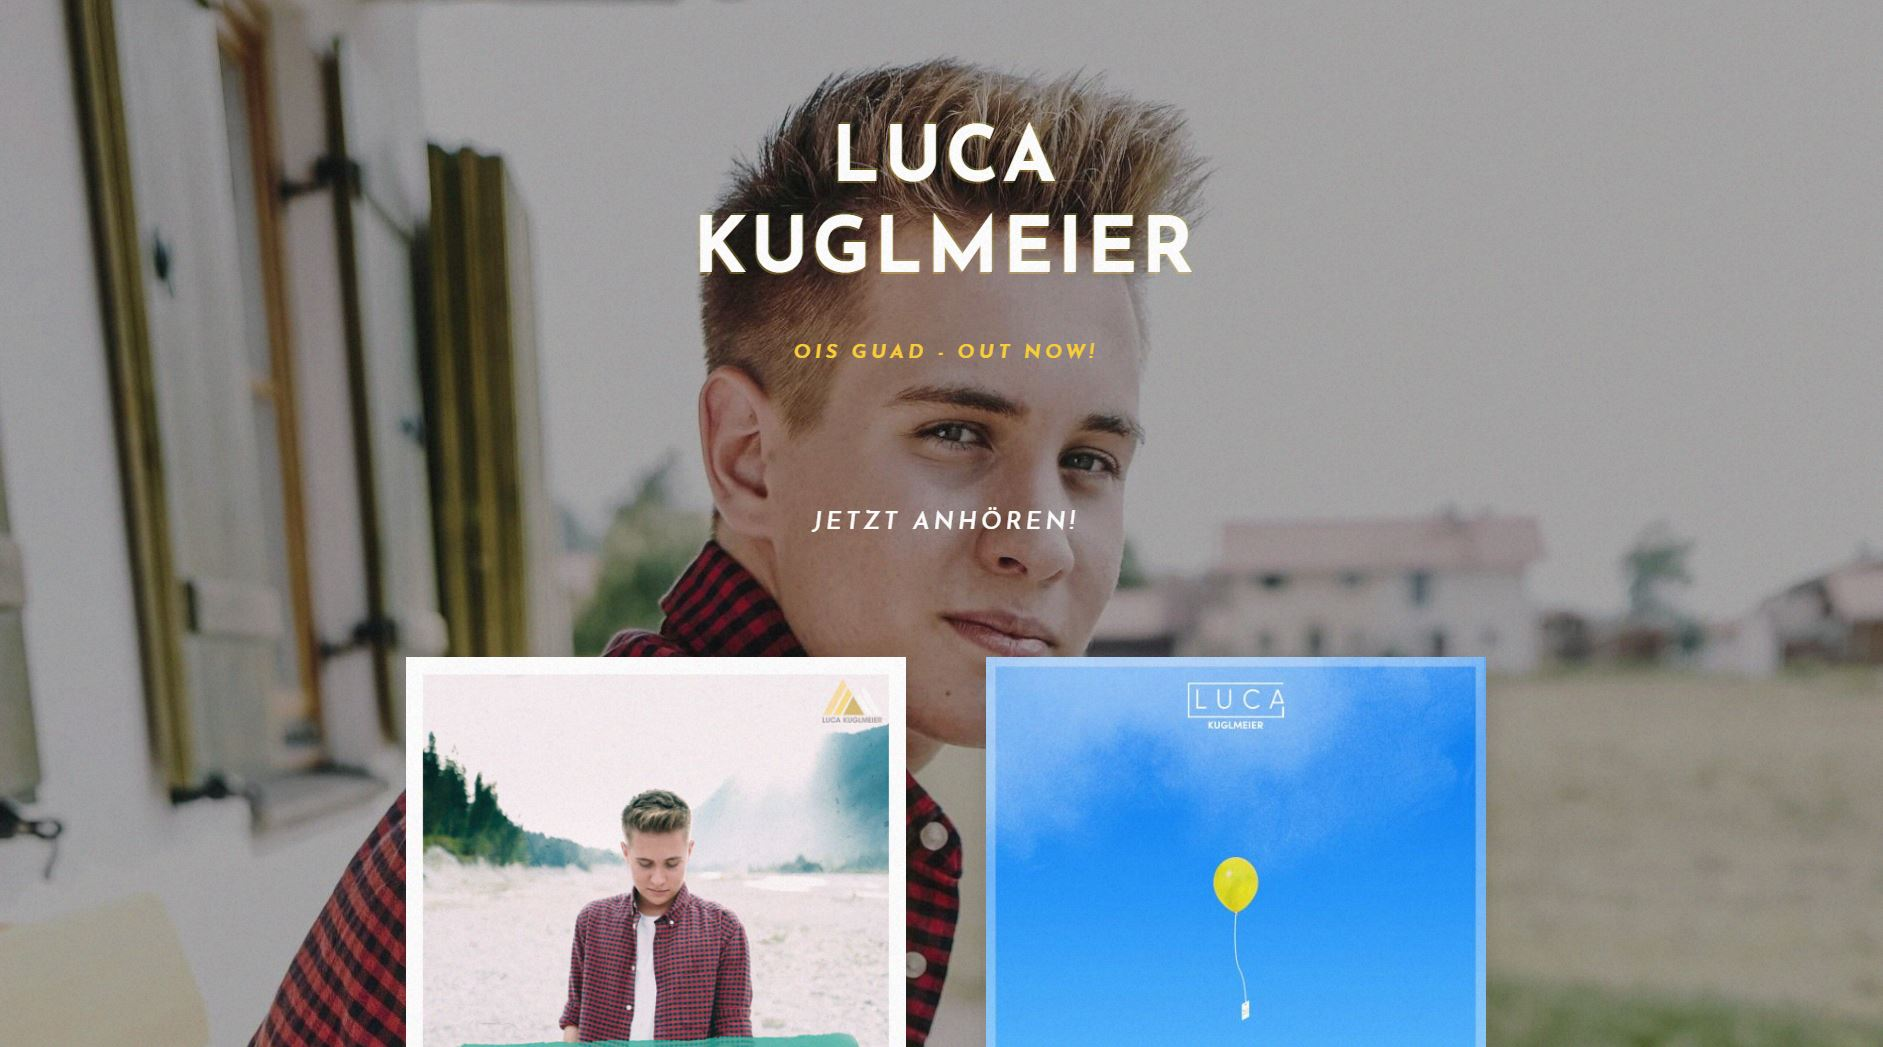 Luca Kuglmeier - The Voice Kids